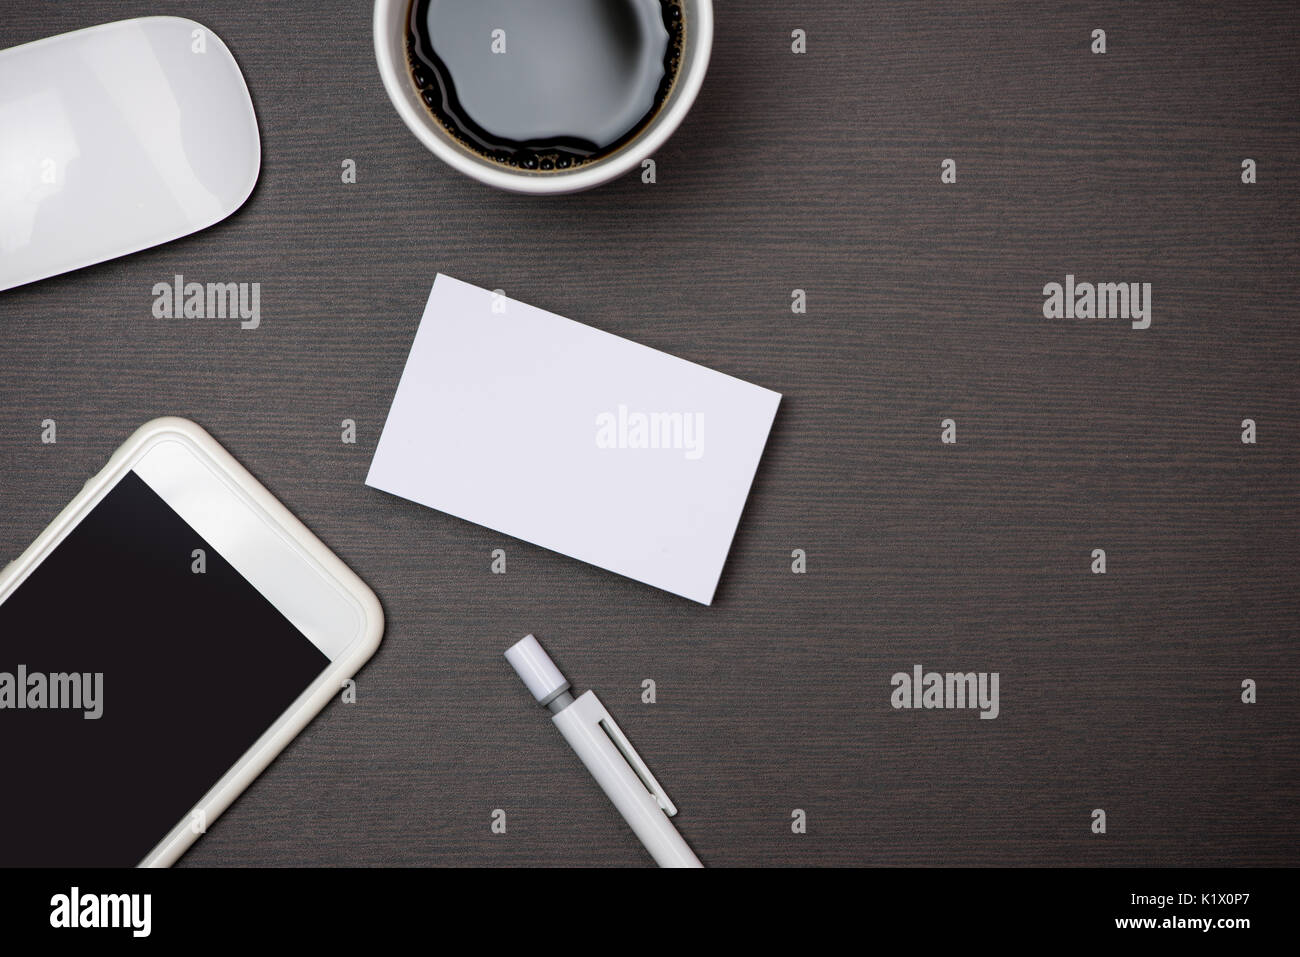 Business Card And Phone Blank Mockup Stock Photos & Business Card ...